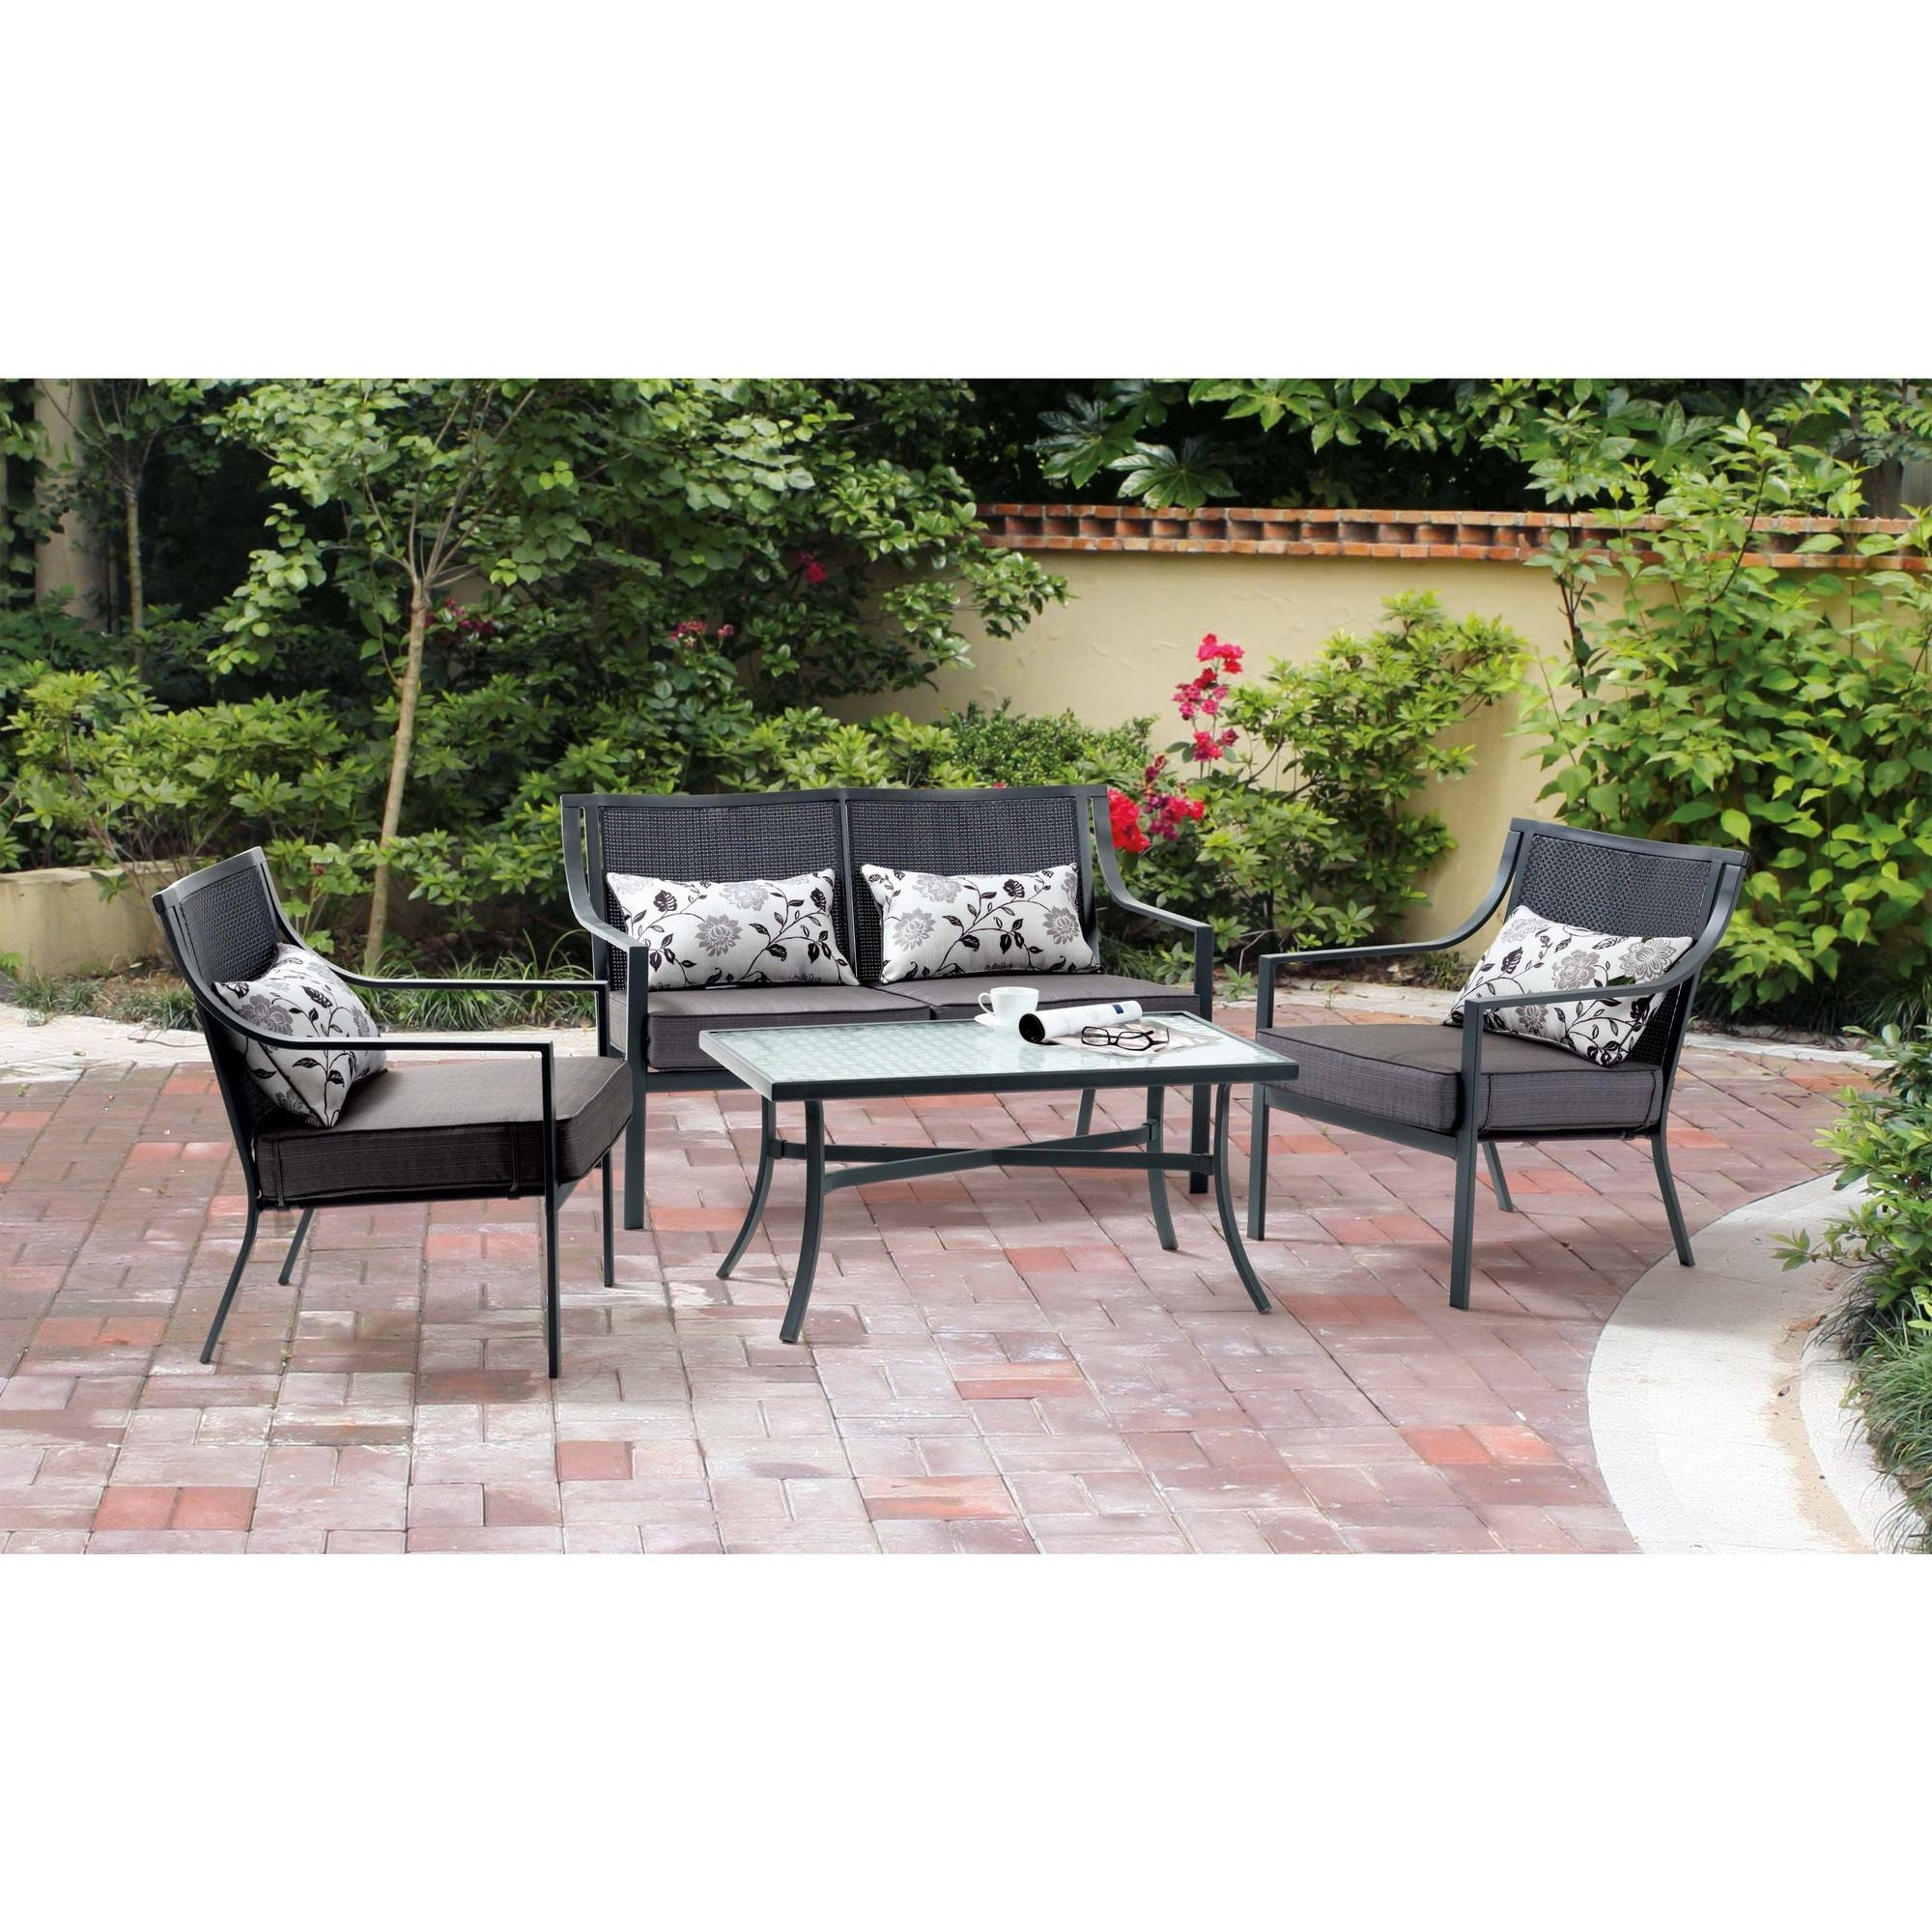 Mainstays Alexandra Square 4 Piece Patio Conversation Set, Grey With With Fashionable Grey Patio Conversation Sets (View 14 of 20)